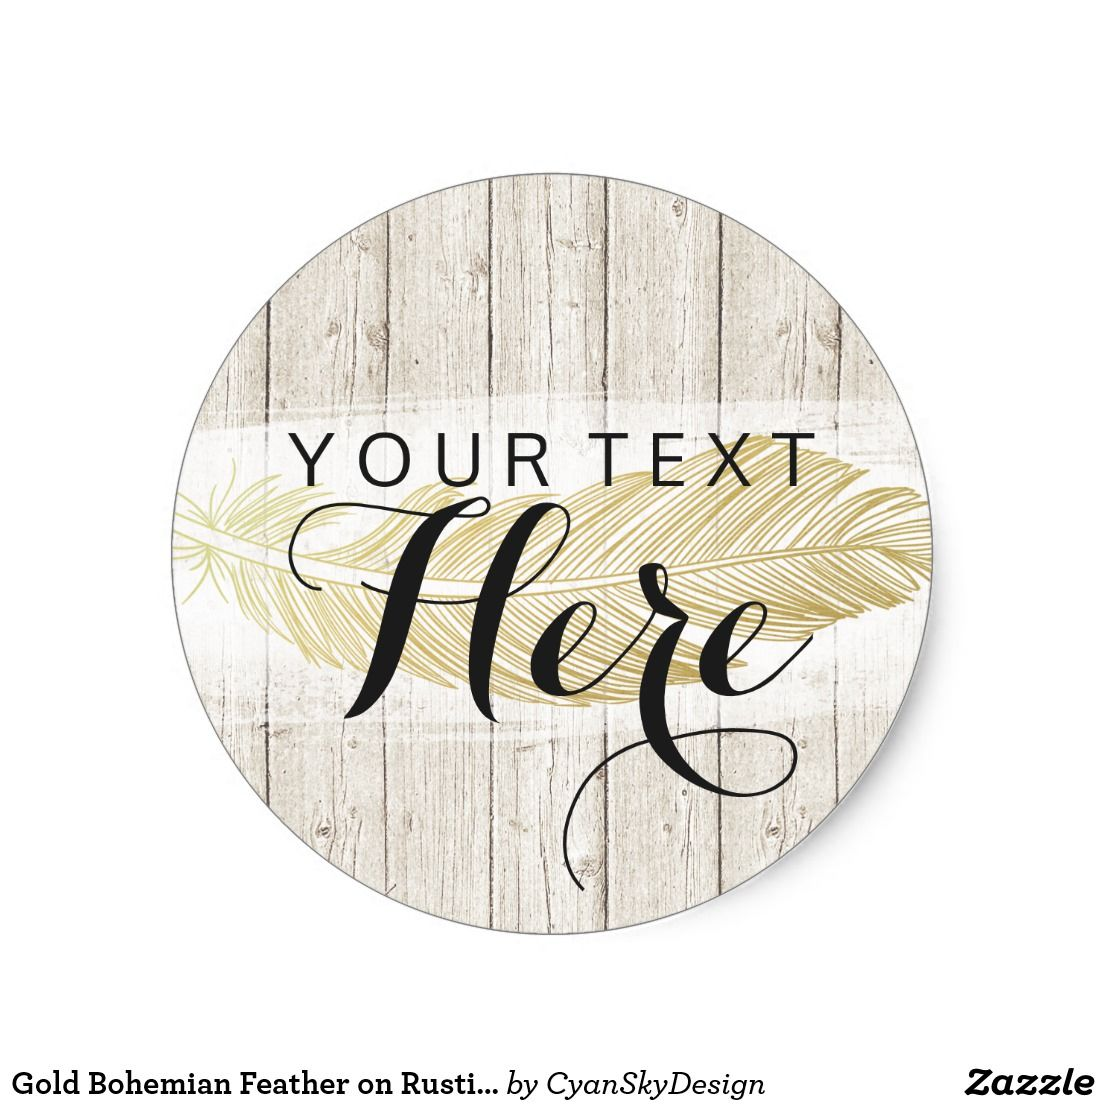 Gold bohemian feather on rustic wood boards classic round sticker • custom personalized text product packaging labels by cyanskydesign on zazzle